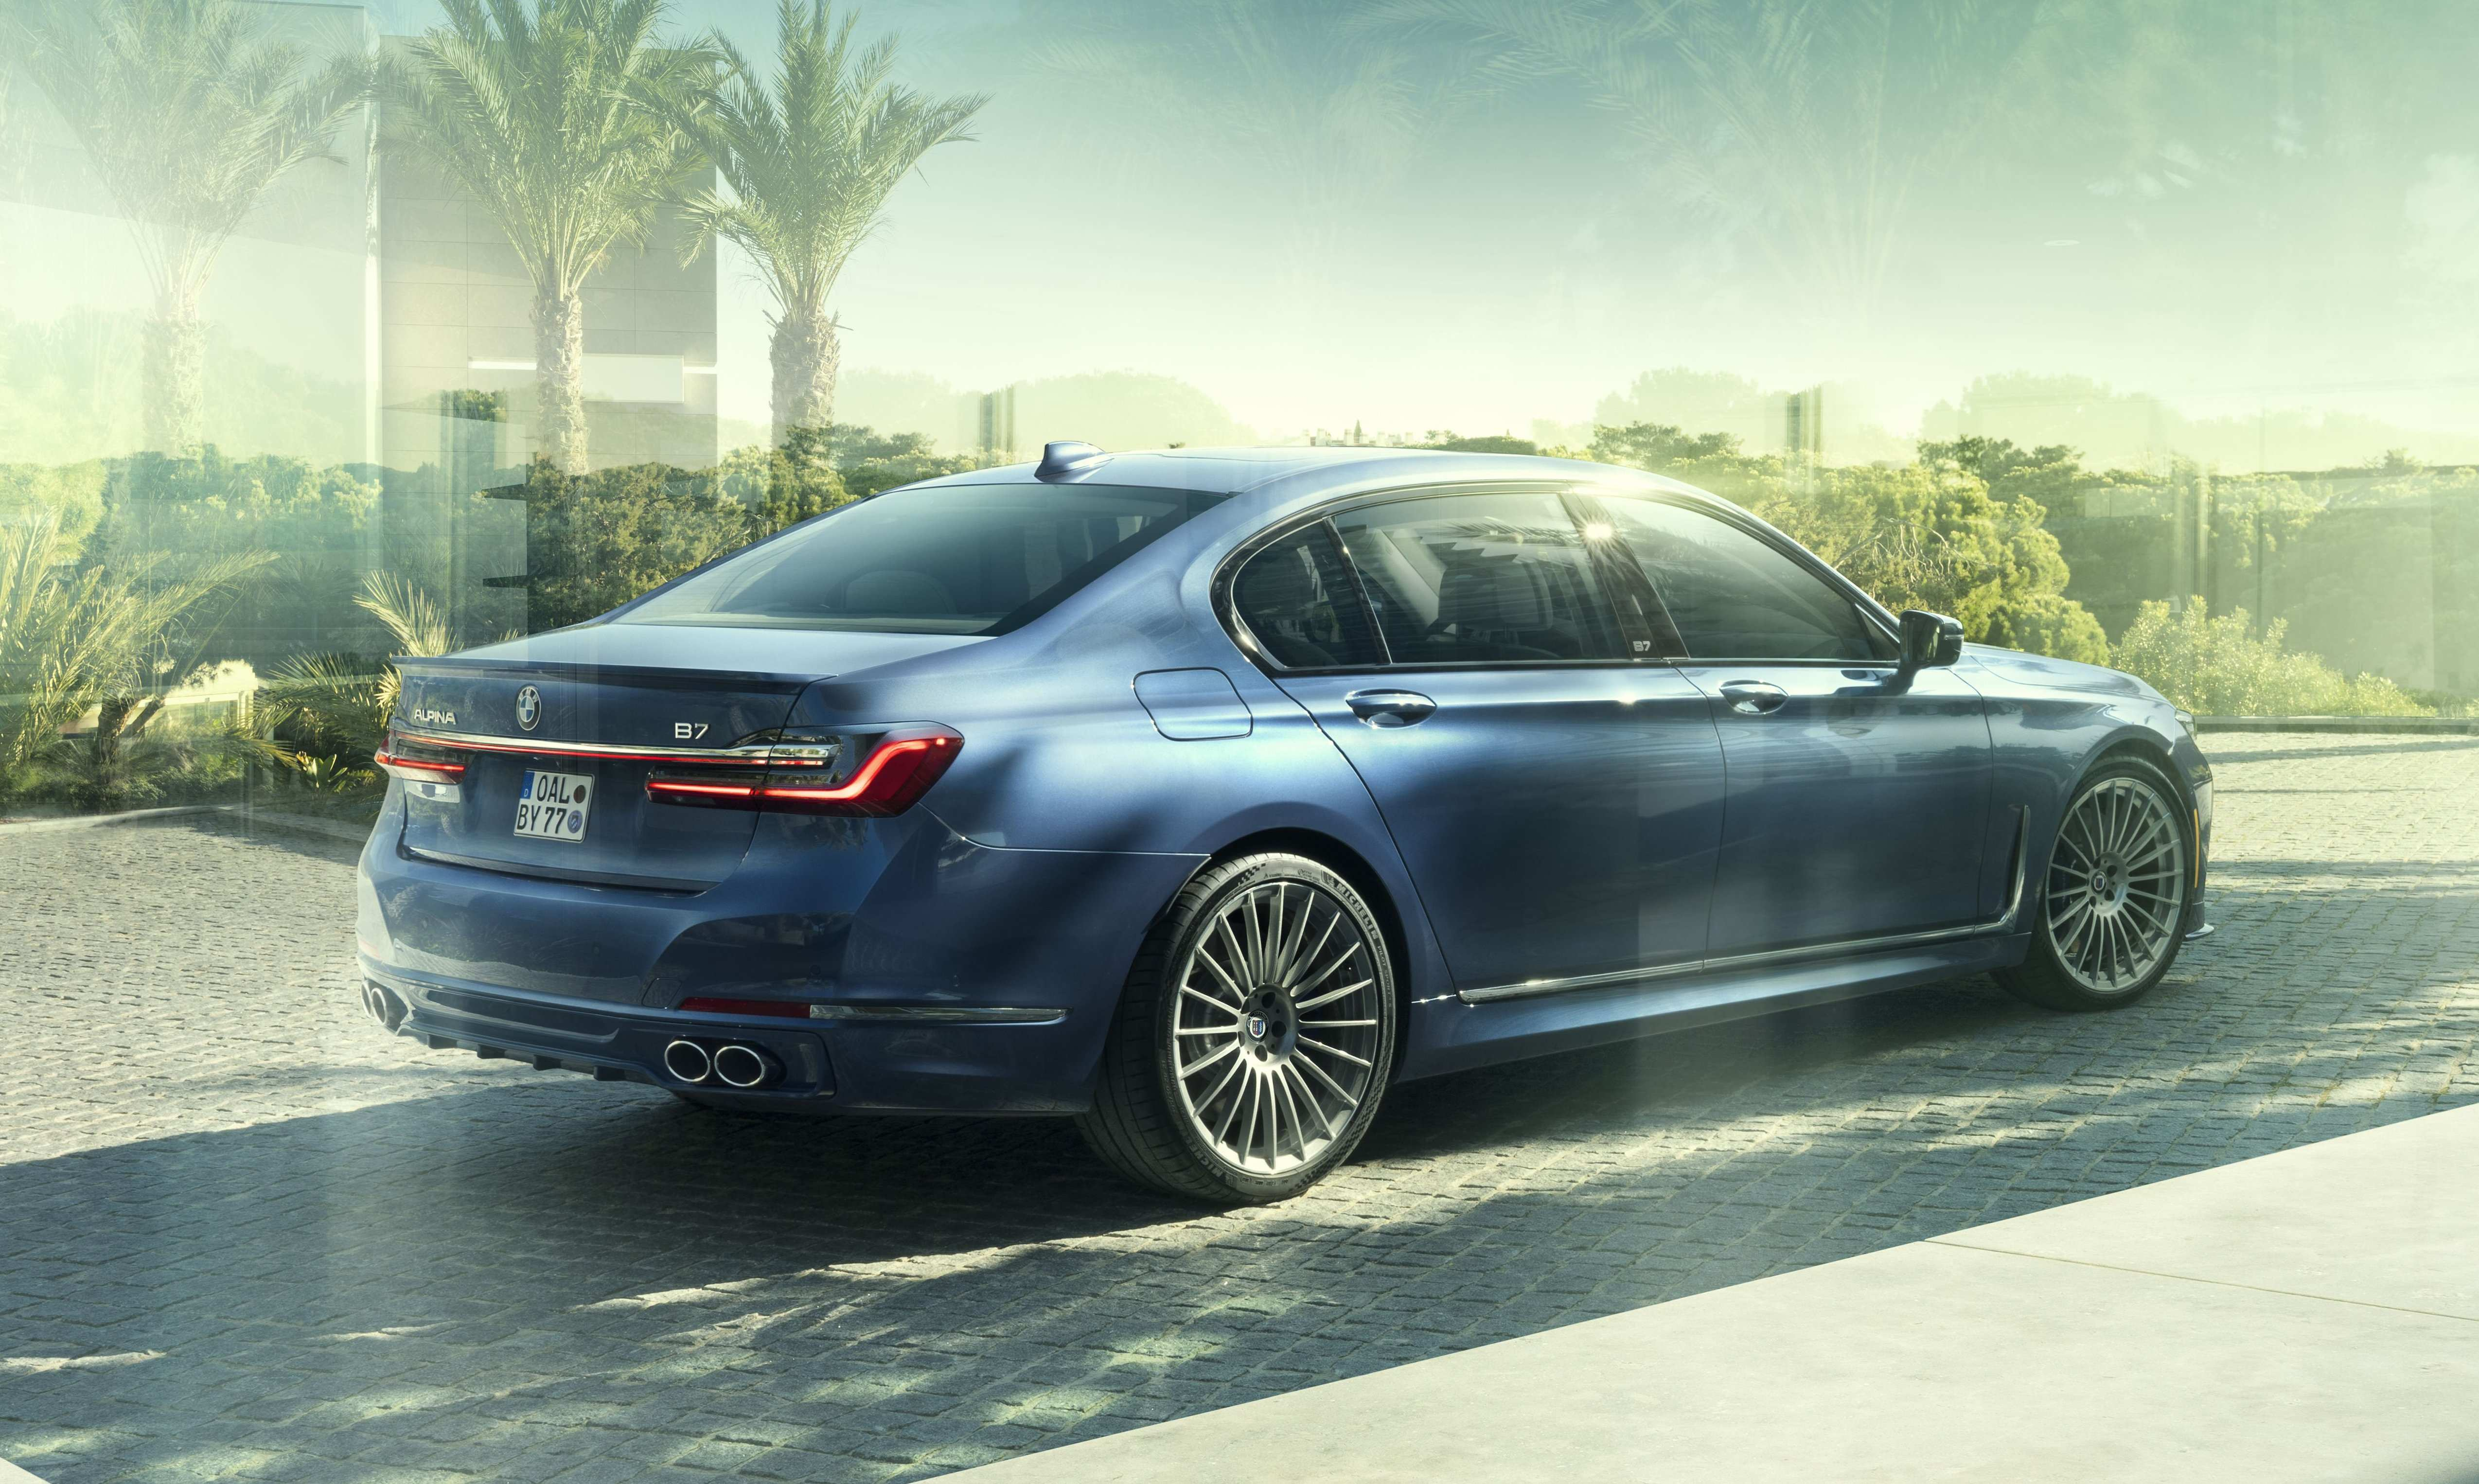 52 Gallery of Bmw Alpina B7 2020 Spy Shoot with Bmw Alpina B7 2020